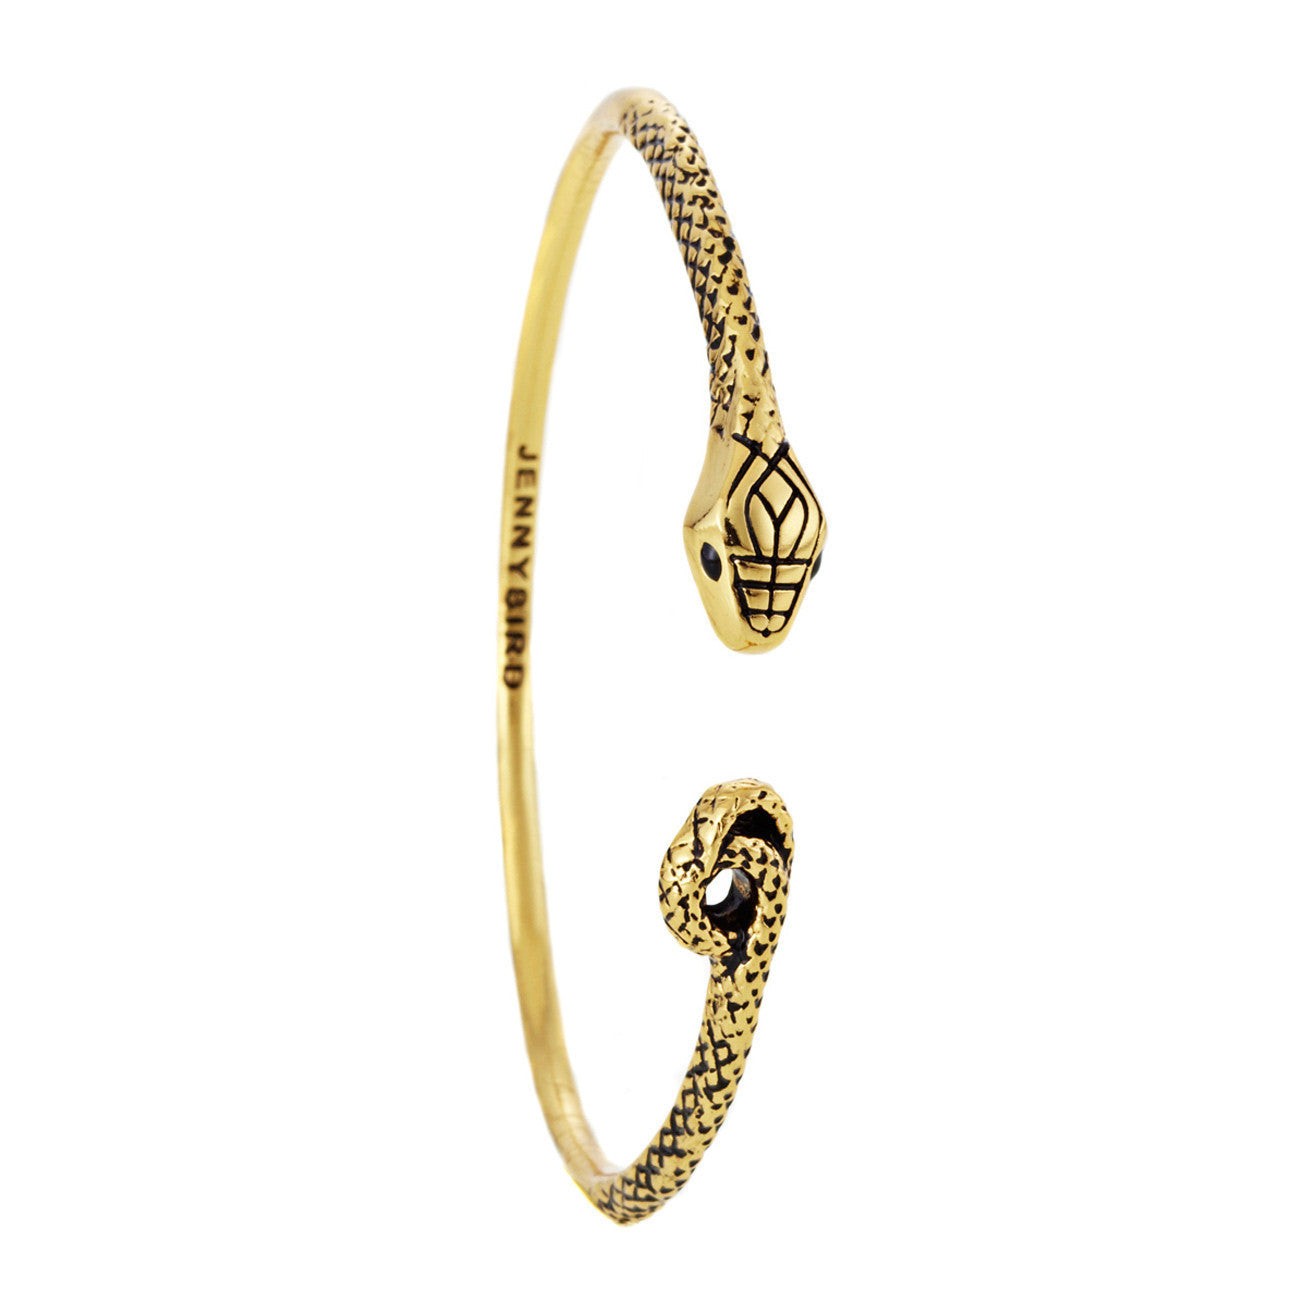 Kundali Queen Serpent Bangle in Gold by Jenny Bird